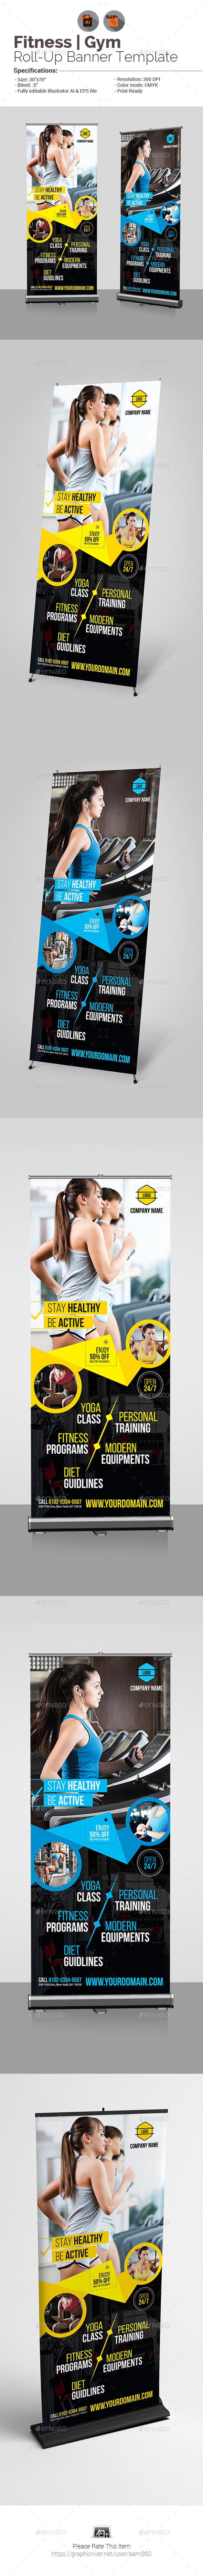 Fitness - Gym Roll-Up Banner - Signage Print Templates